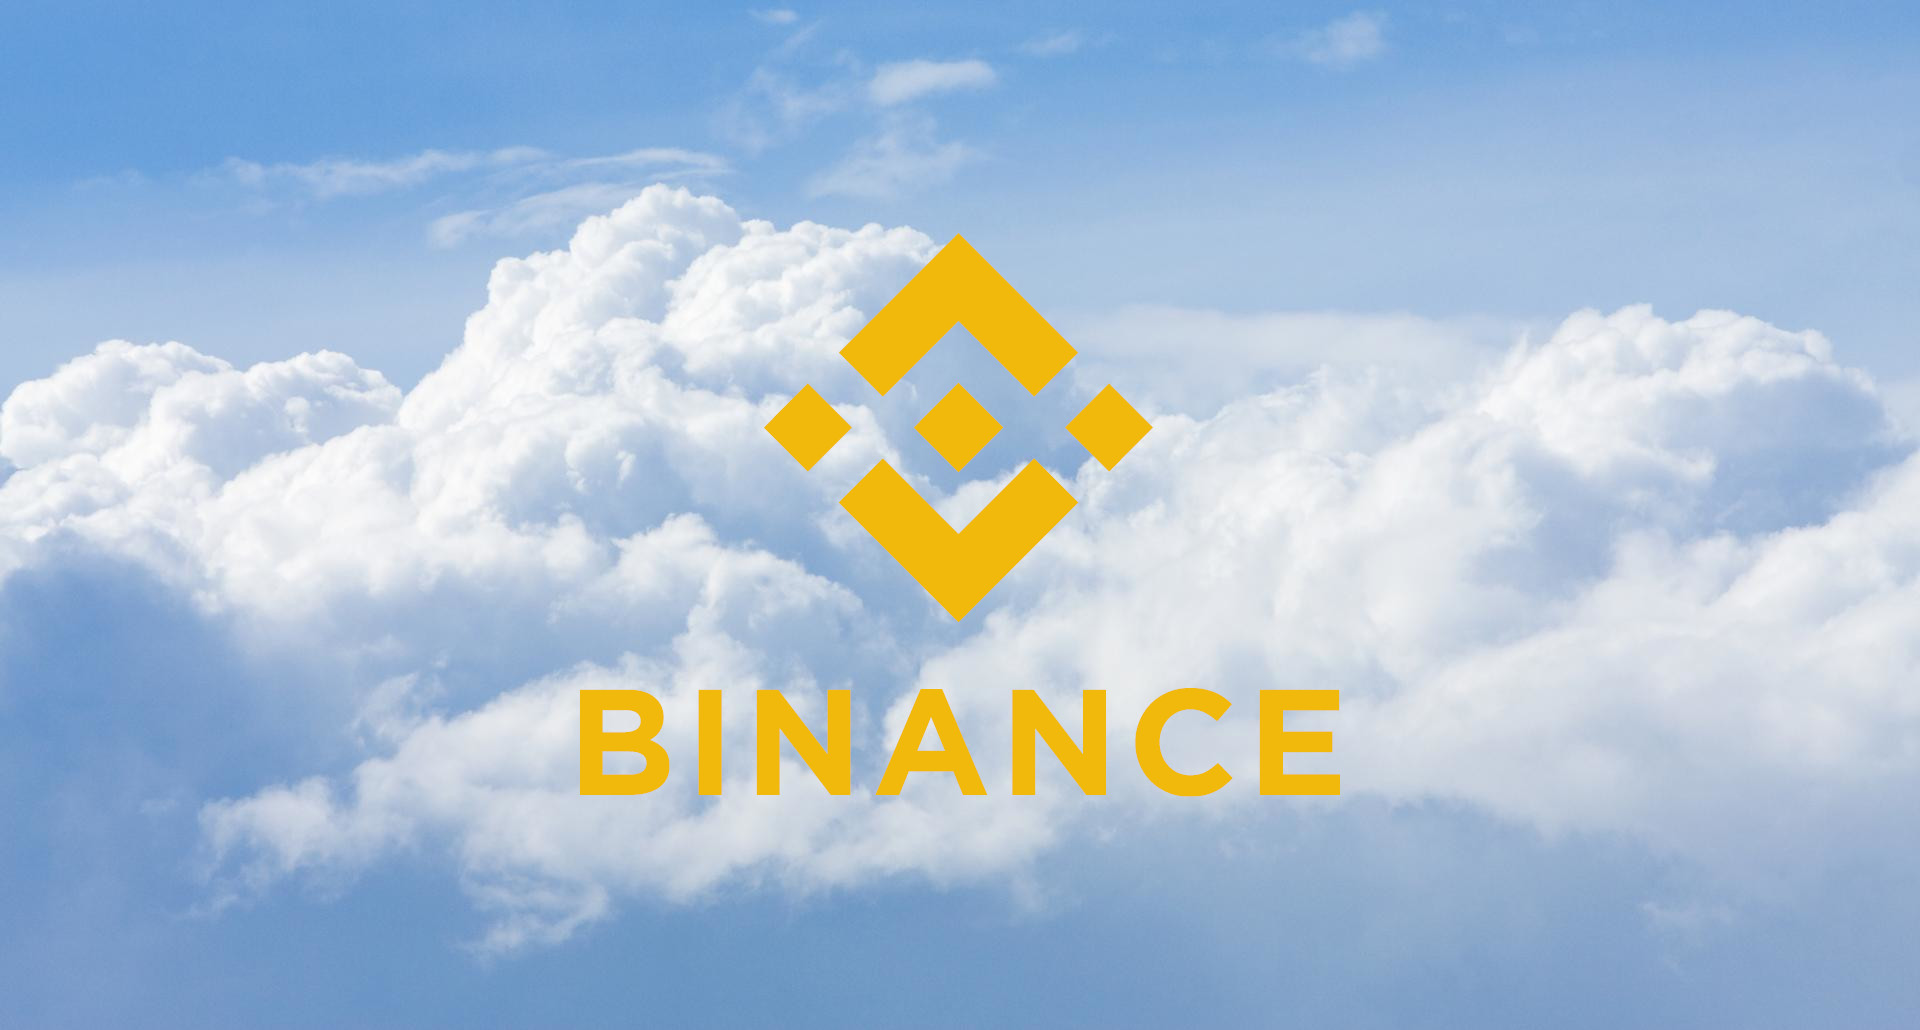 binance cloud